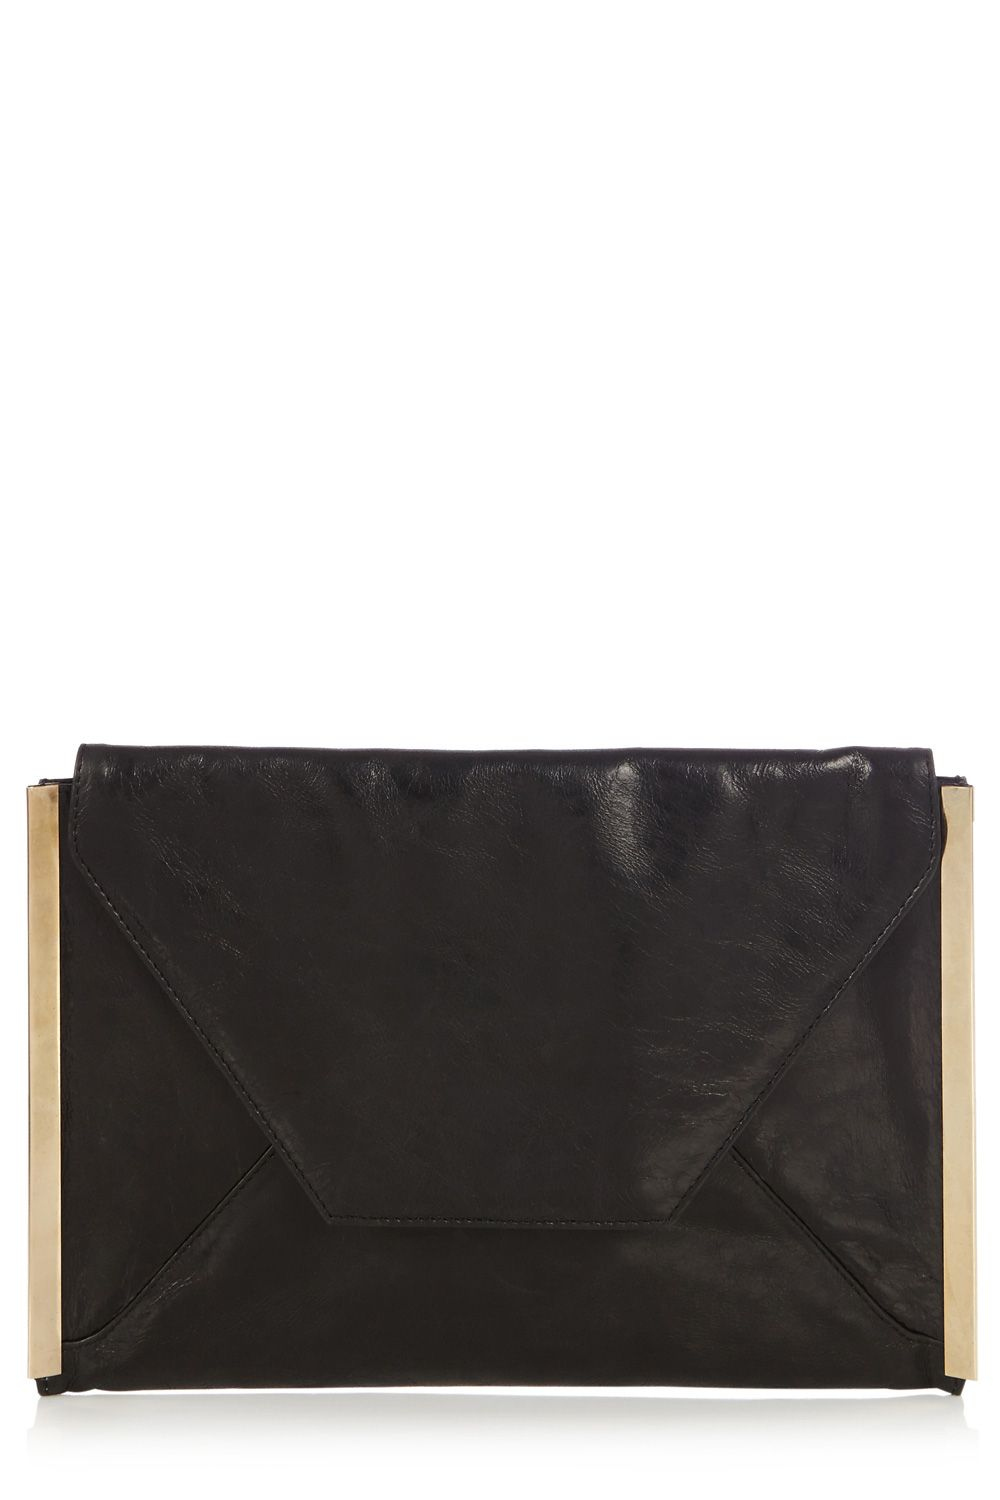 Cara leather envelope clutch bag